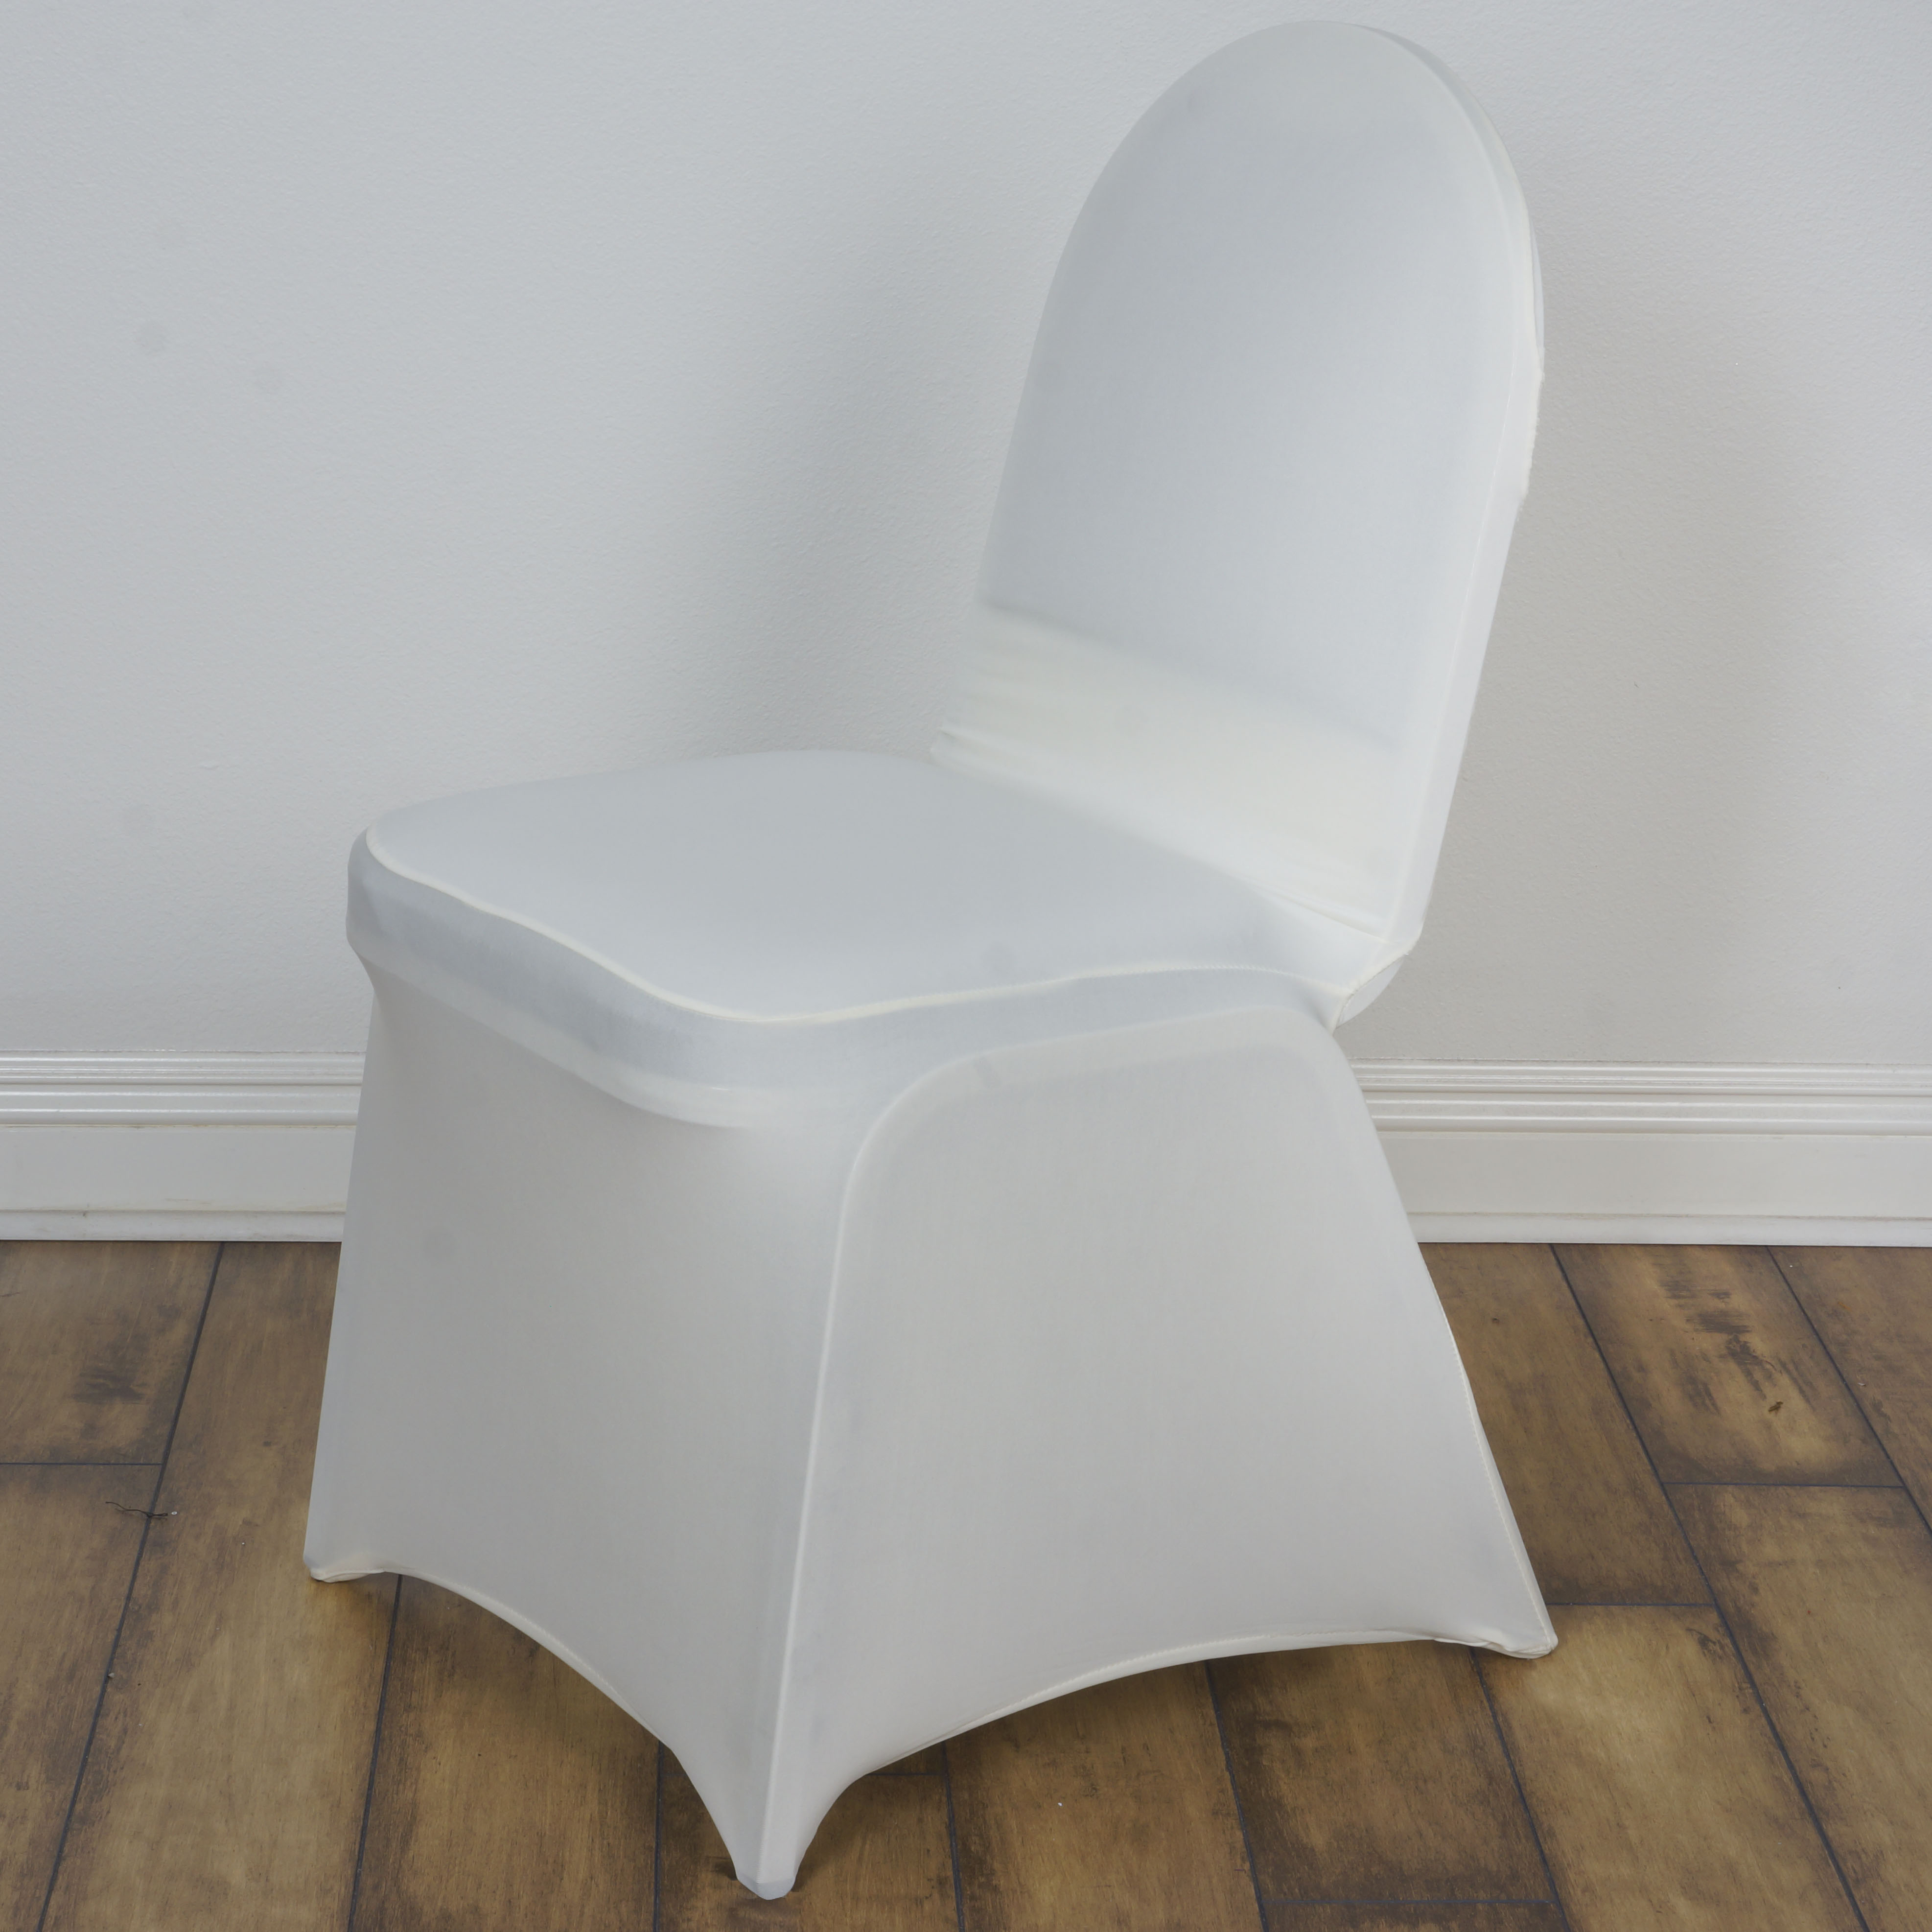 10 MADRID BANQUET CHAIR COVERS with CrissCross Design Reception